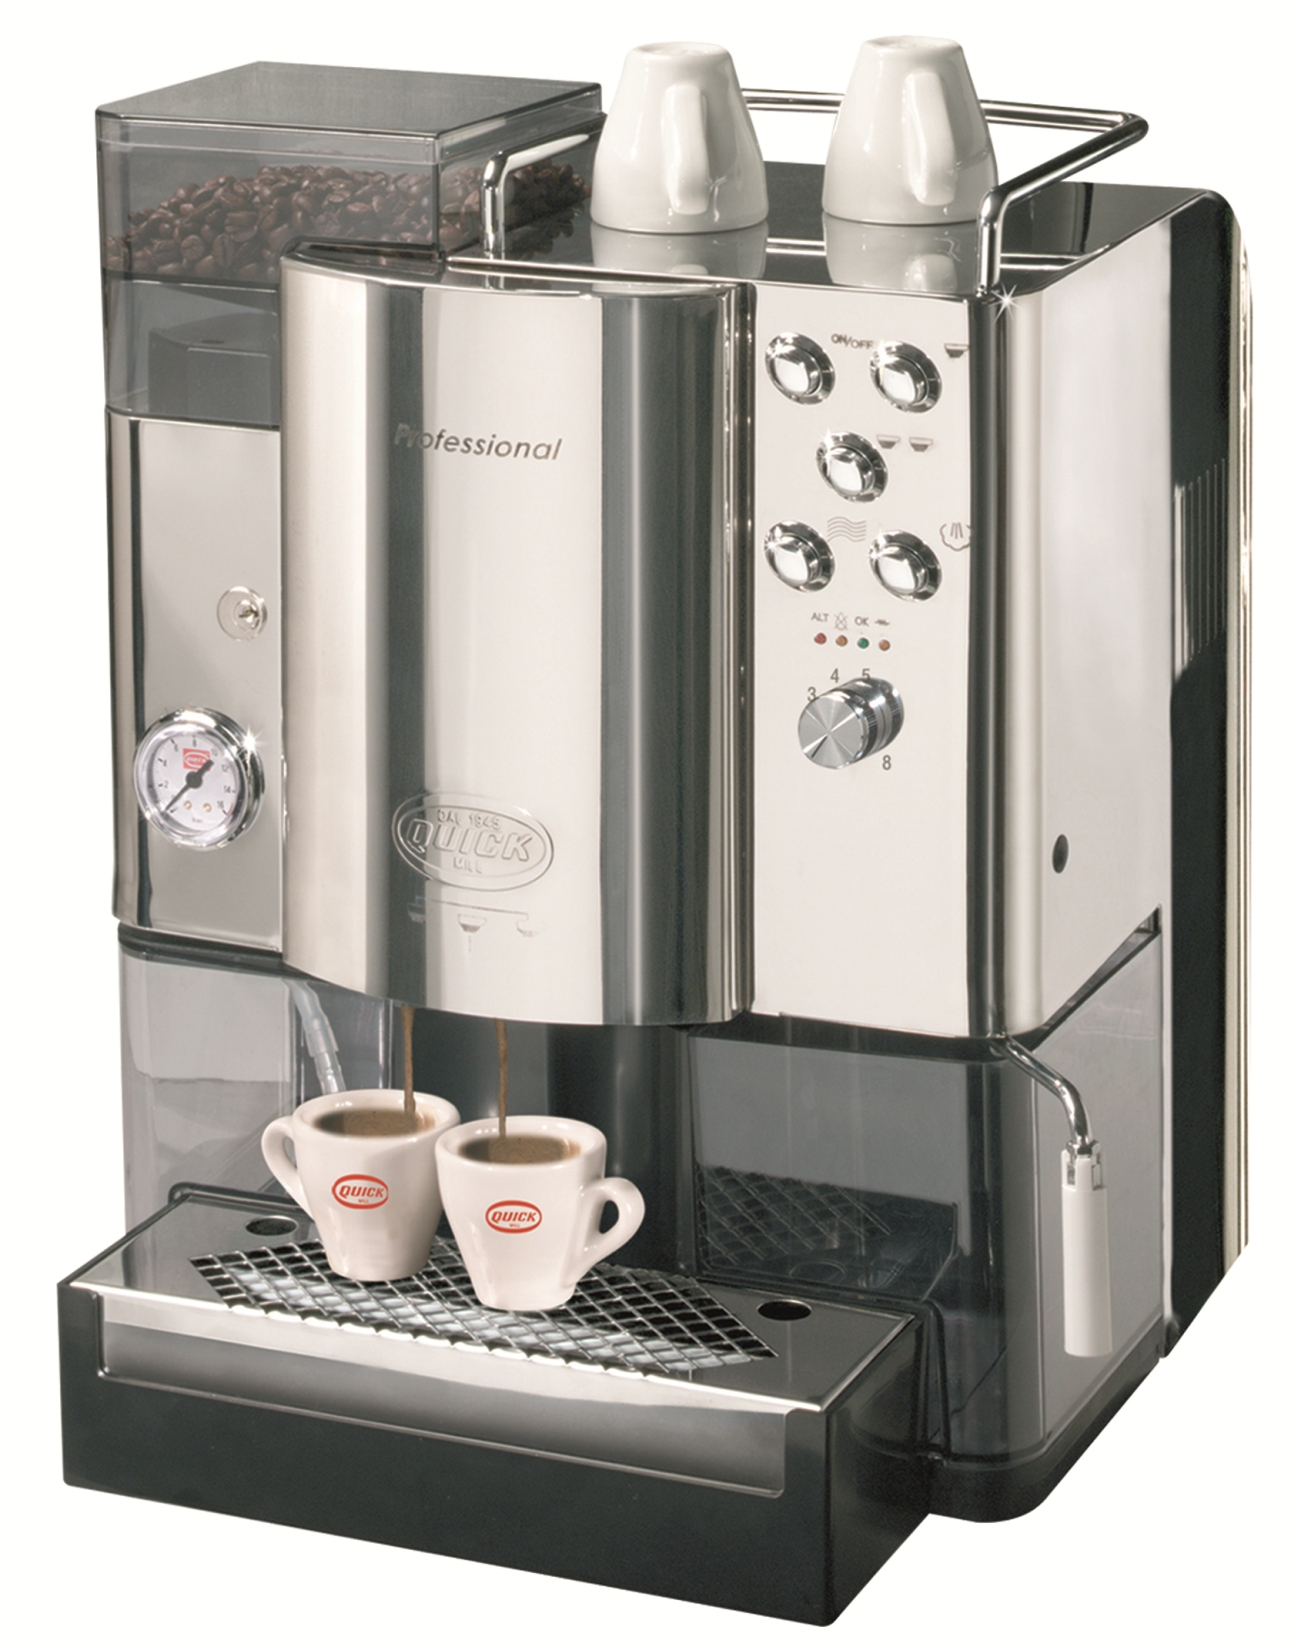 Super-automatic coffee machine Quick Mill Professional MOD.05000, stainless steel